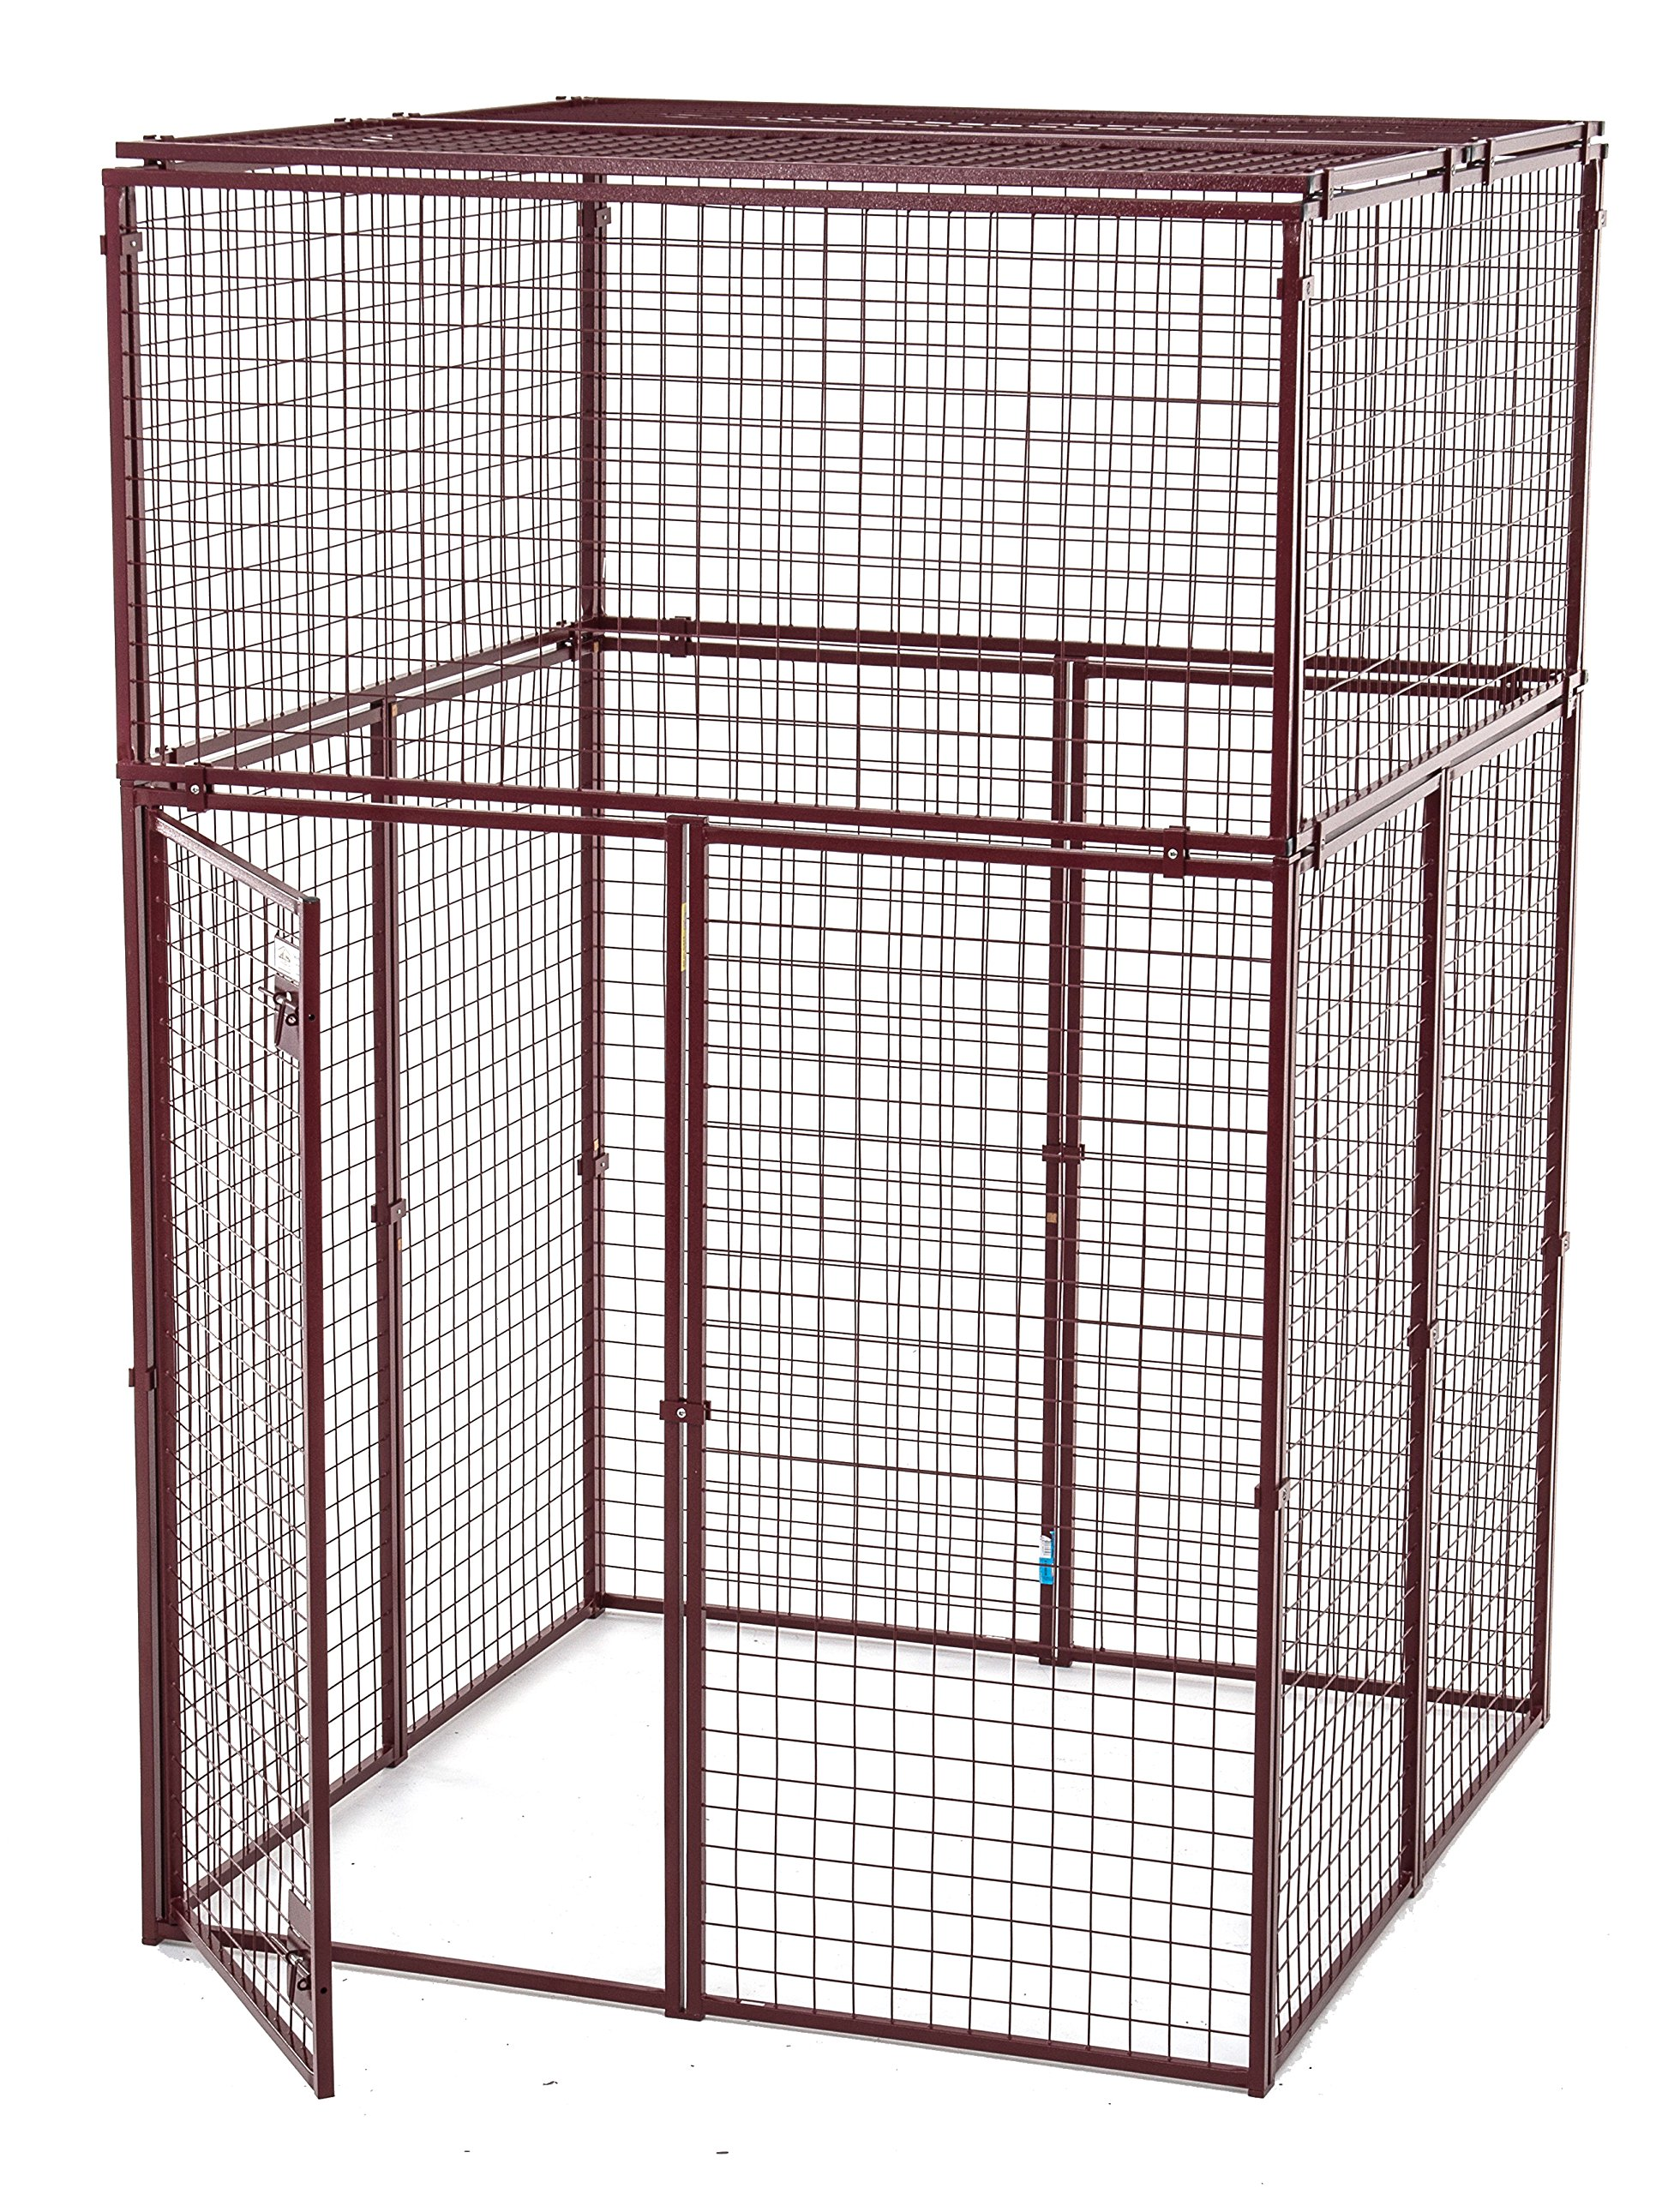 Animal House Heavy Duty Outdoor Protective Kennel (7.5'Hx5'L x5'W) 154.5 lbs